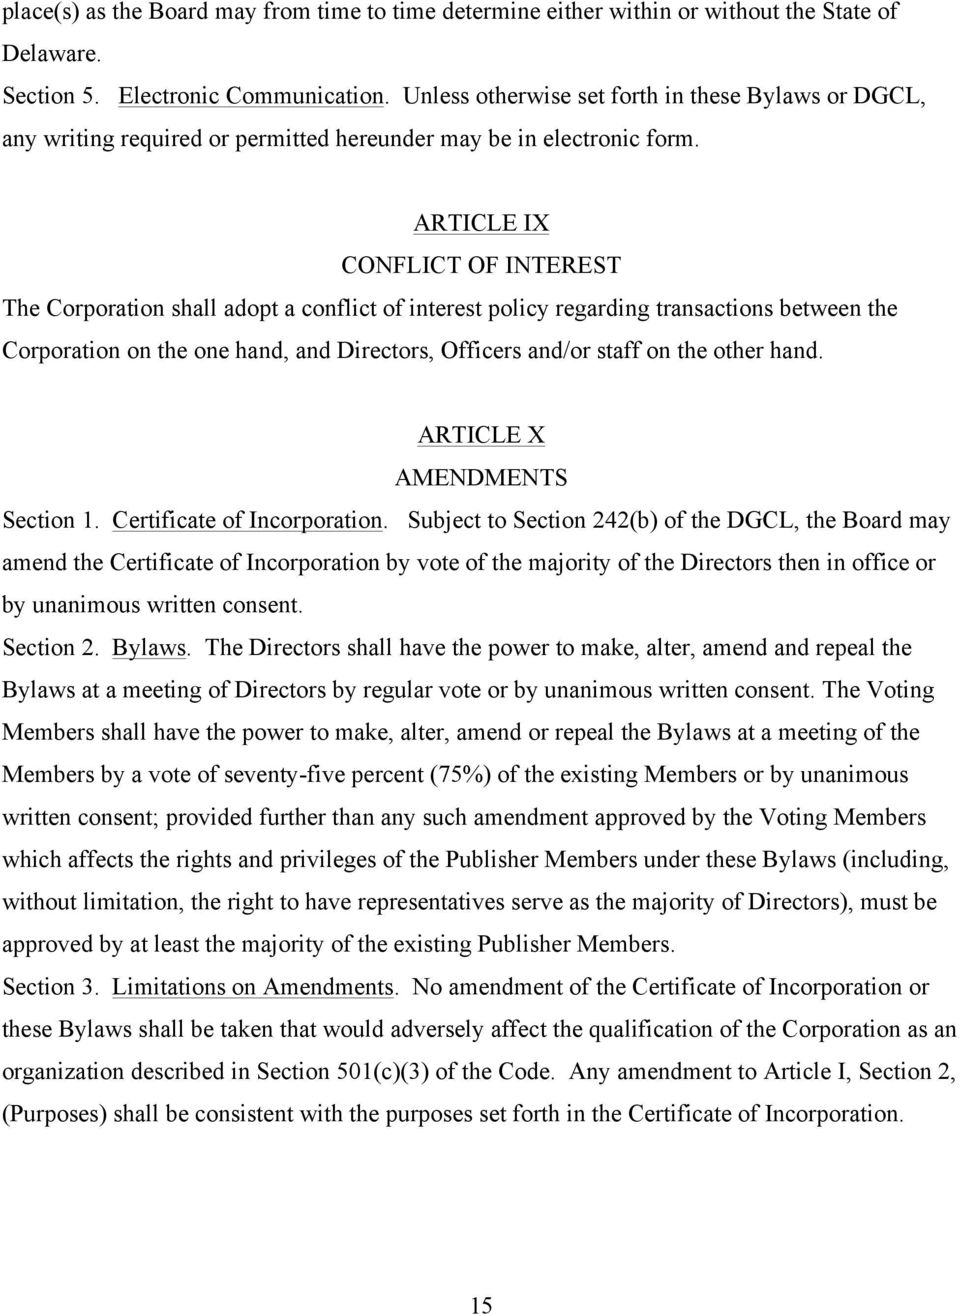 ARTICLE IX CONFLICT OF INTEREST The Corporation shall adopt a conflict of interest policy regarding transactions between the Corporation on the one hand, and Directors, Officers and/or staff on the